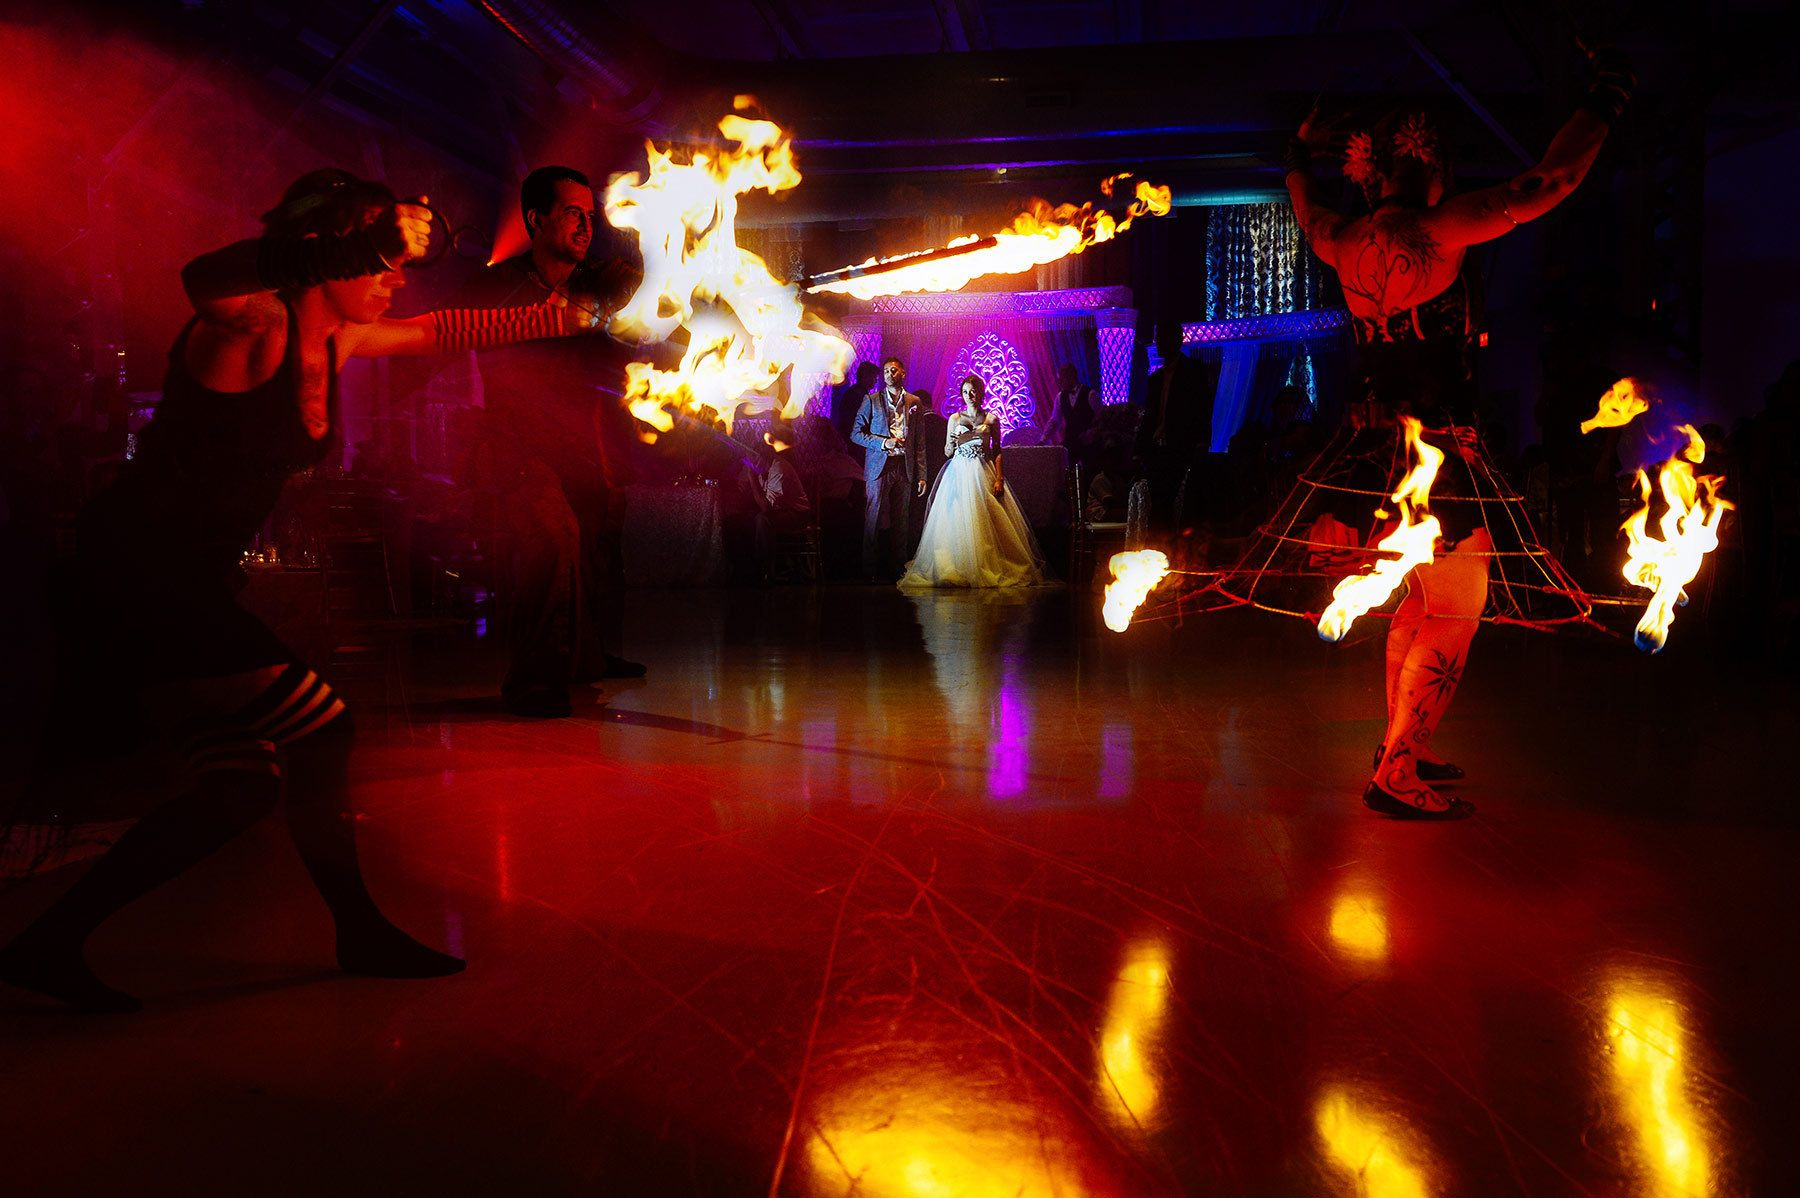 Montreal wedding photographer, the newlyweds watching the fire show